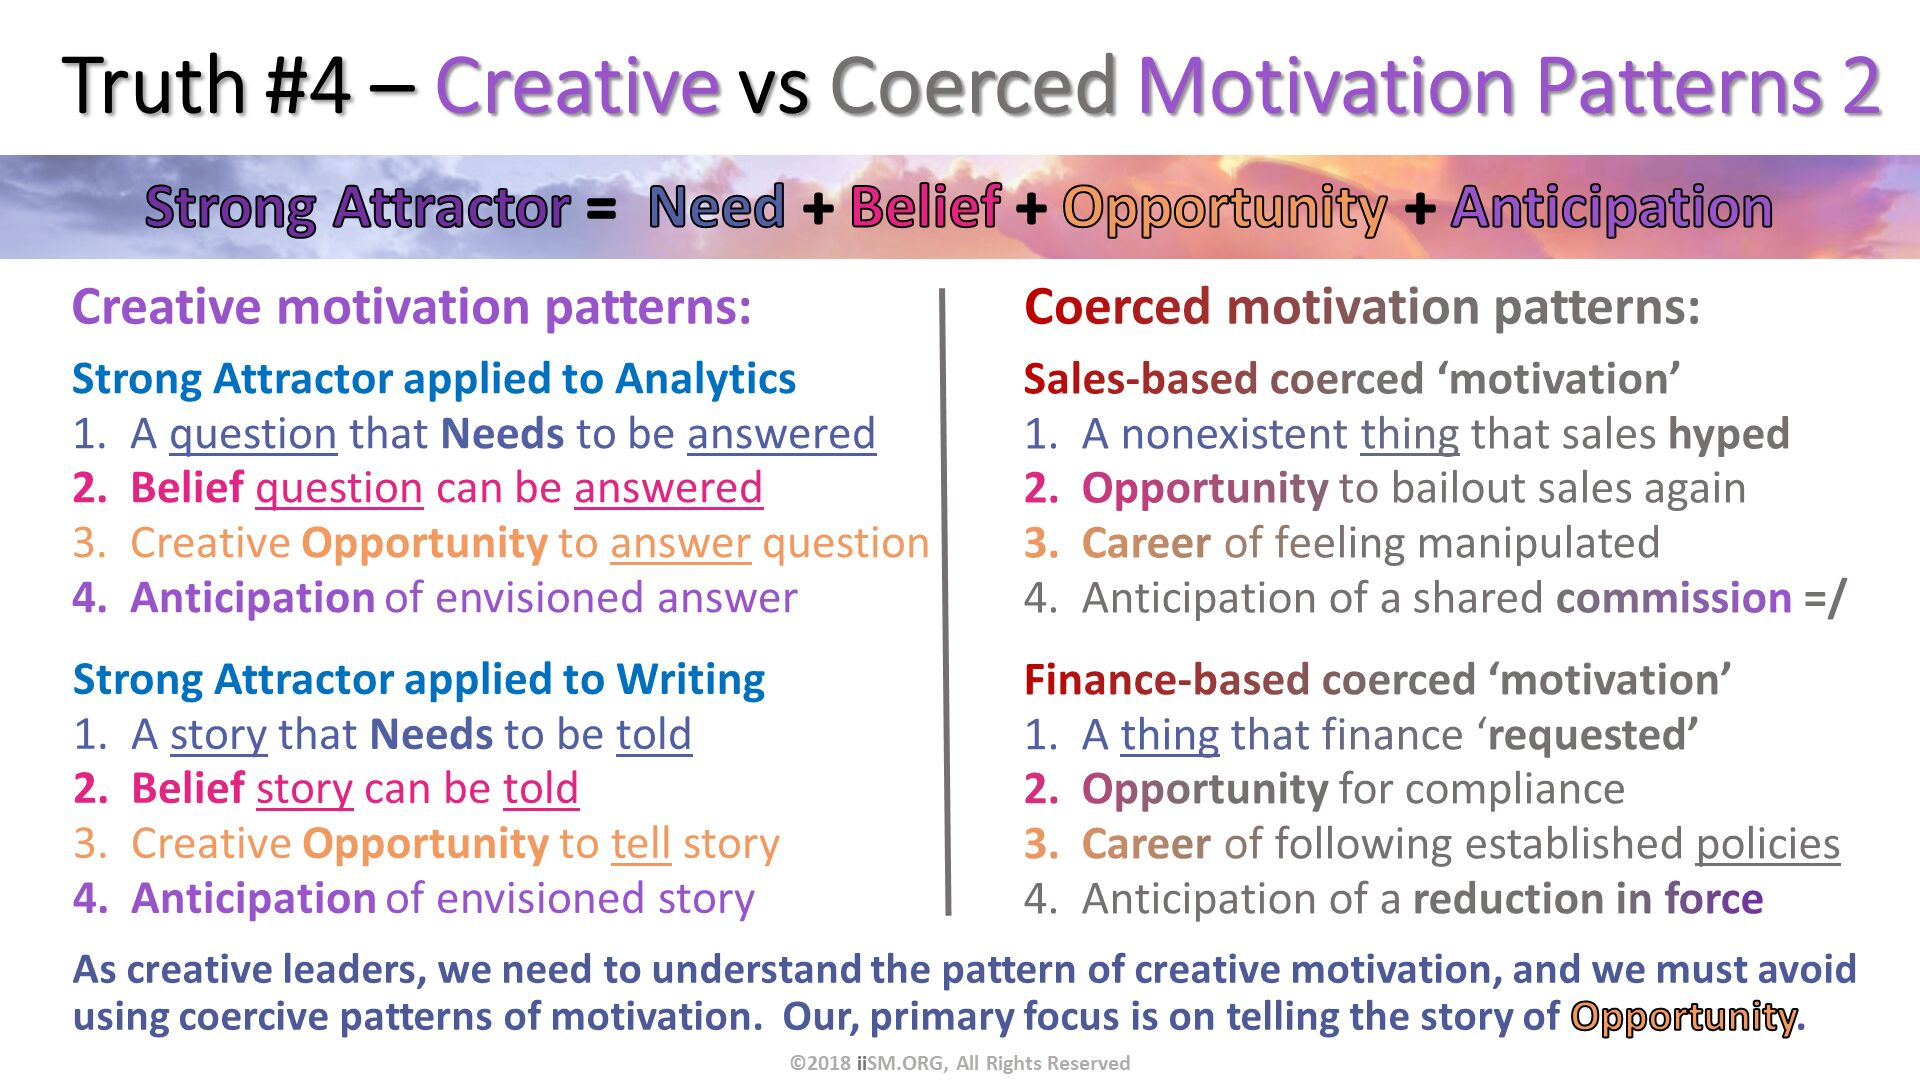 Truth #4 – Creative vs Coerced Motivation Patterns 2. Sales-based coerced 'motivation' A nonexistent thing that sales hyped Opportunity to bailout sales again  Career of feeling manipulated Anticipation of a shared commission =/. Finance-based coerced 'motivation' A thing that finance 'requested' Opportunity for compliance Career of following established policies Anticipation of a reduction in force. Creative motivation patterns:. ©2018 iiSM.ORG, All Rights Reserved. Coerced motivation patterns:. Strong Attractor applied to Analytics A question that Needs to be answered Belief question can be answered Creative Opportunity to answer question Anticipation of envisioned answer. Strong Attractor applied to Writing A story that Needs to be told Belief story can be told Creative Opportunity to tell story Anticipation of envisioned story. As creative leaders, we need to understand the pattern of creative motivation, and we must avoid using coercive patterns of motivation.  Our, primary focus is on telling the story of Opportunity.